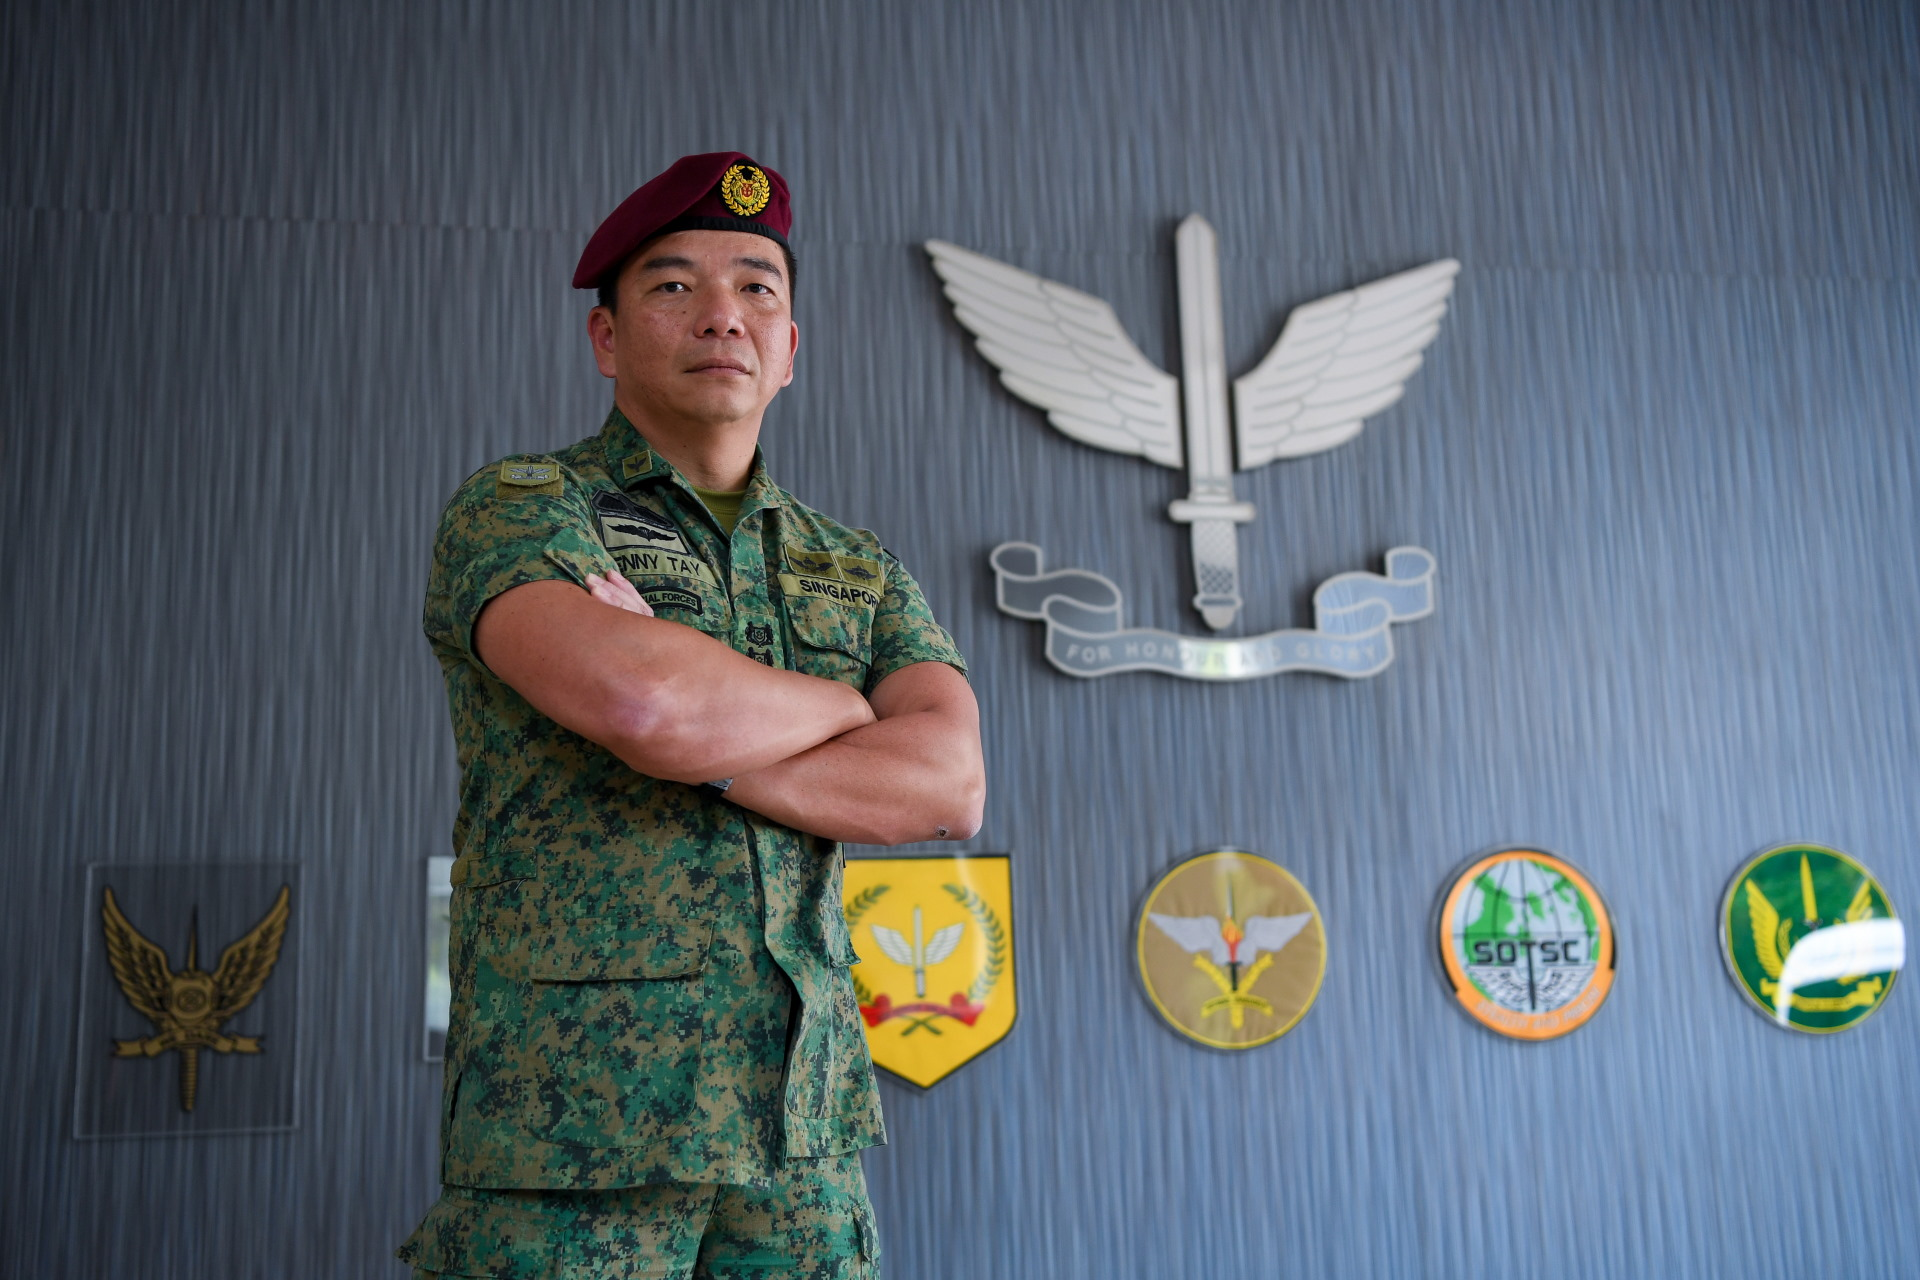 https://www.mindef.gov.sg/web/wcm/connect/pioneer/712a4cbd-dd0e-4cd7-8a78-d20f38b56eaa/05dec19pnr-photo0.jpg?MOD=AJPERES&CACHEID=ROOTWORKSPACE.Z18_1QK41482LG0G10Q8NM8IUA1051-712a4cbd-dd0e-4cd7-8a78-d20f38b56eaa-mXlnszn